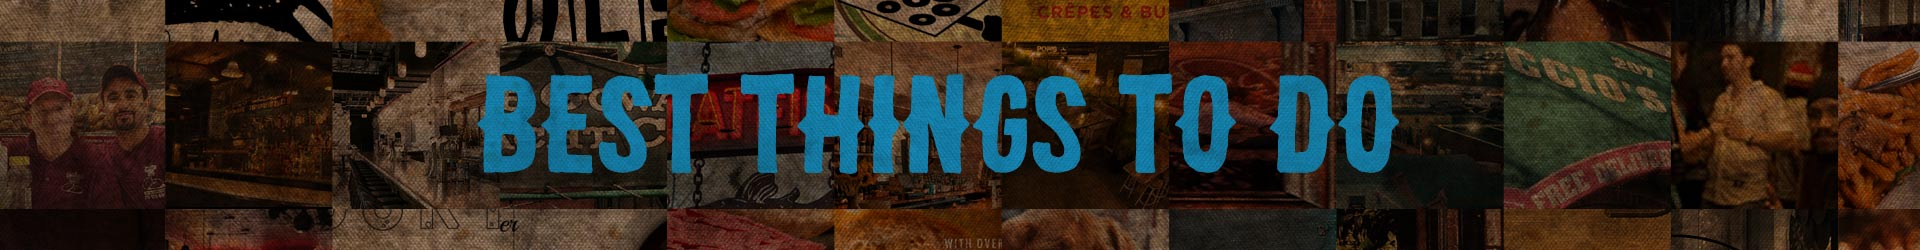 Best Things To Do